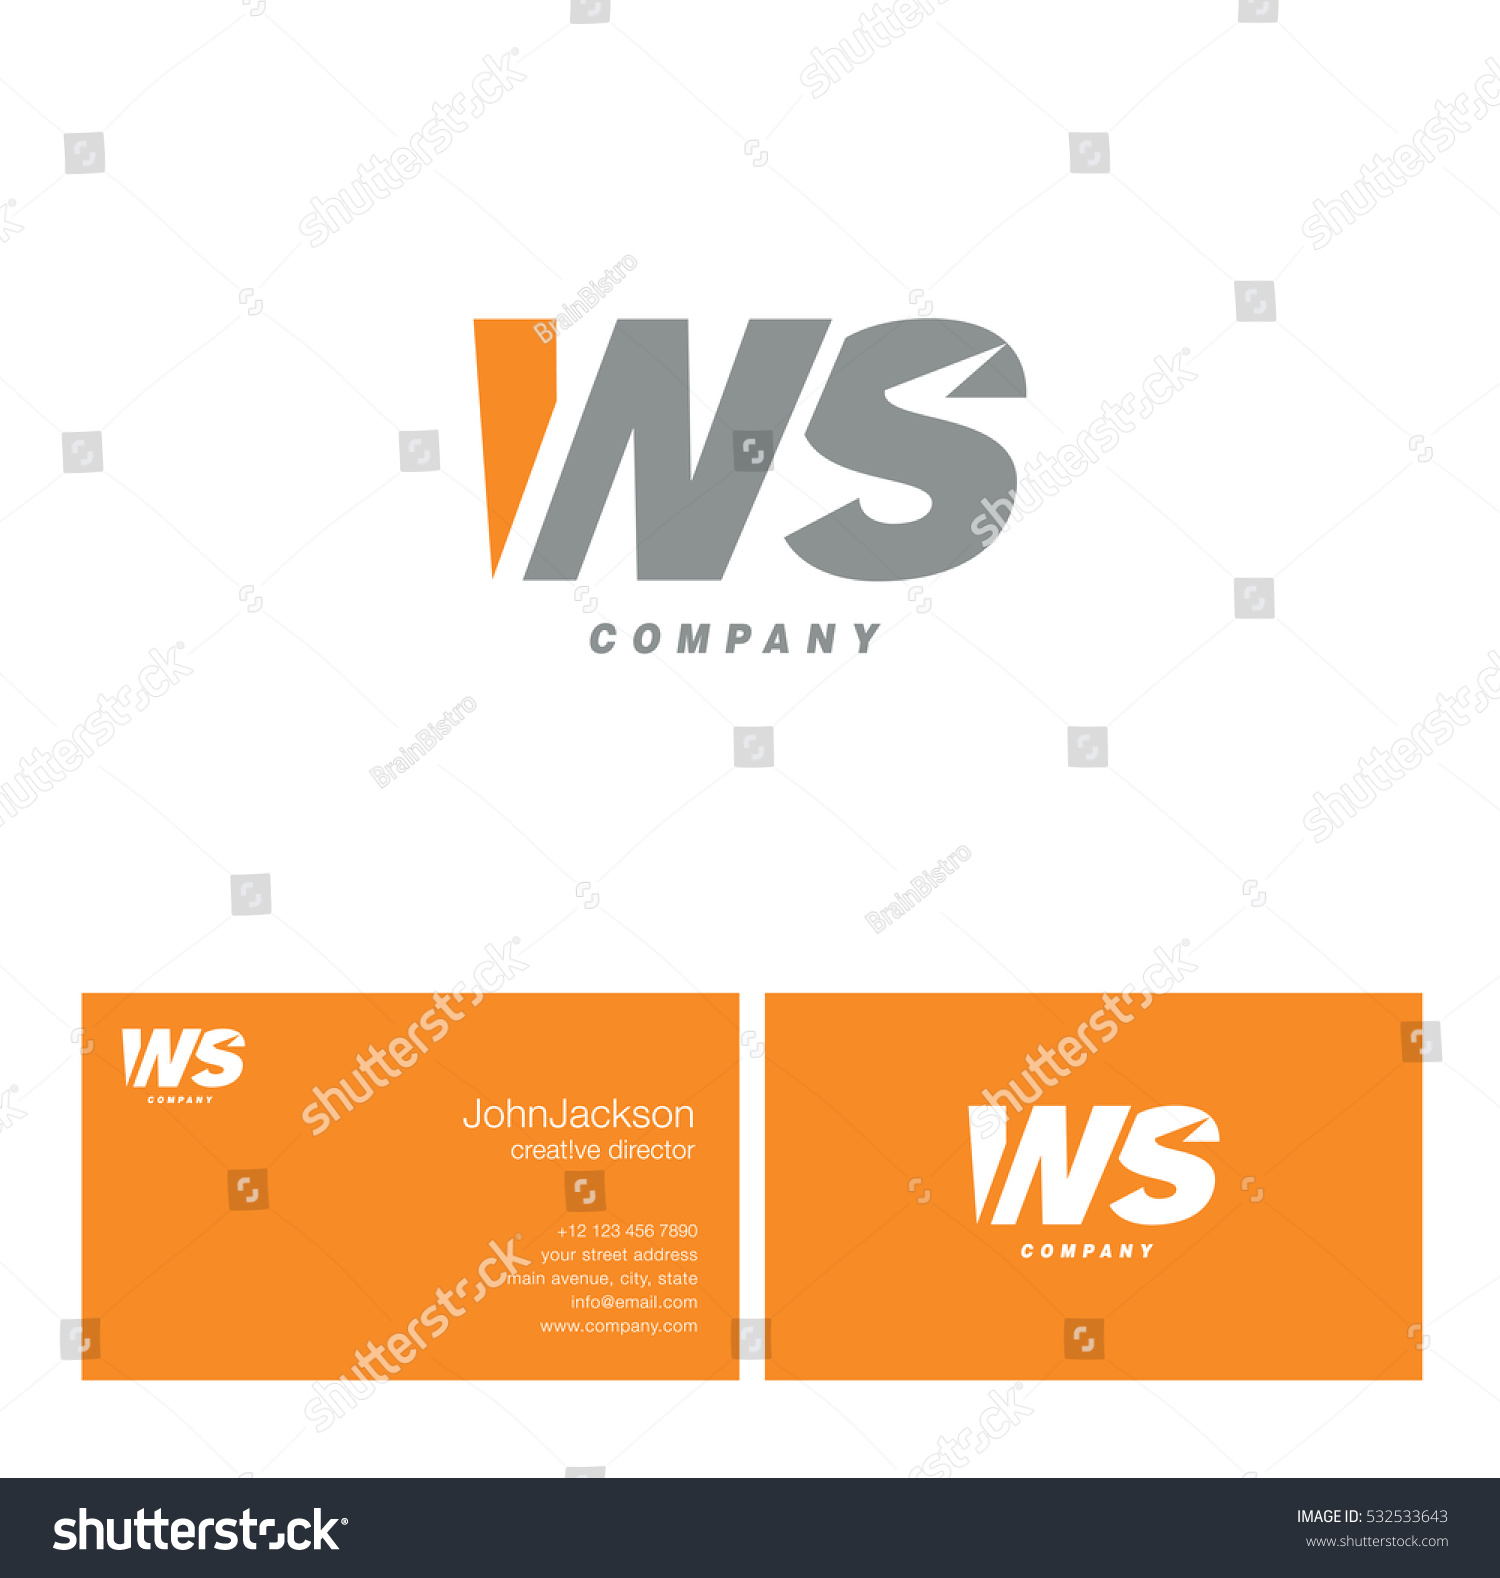 Gm business card image collections free business cards business card templates madinbelgrade story writing essay new images of gm business card business cards and magicingreecefo Image collections